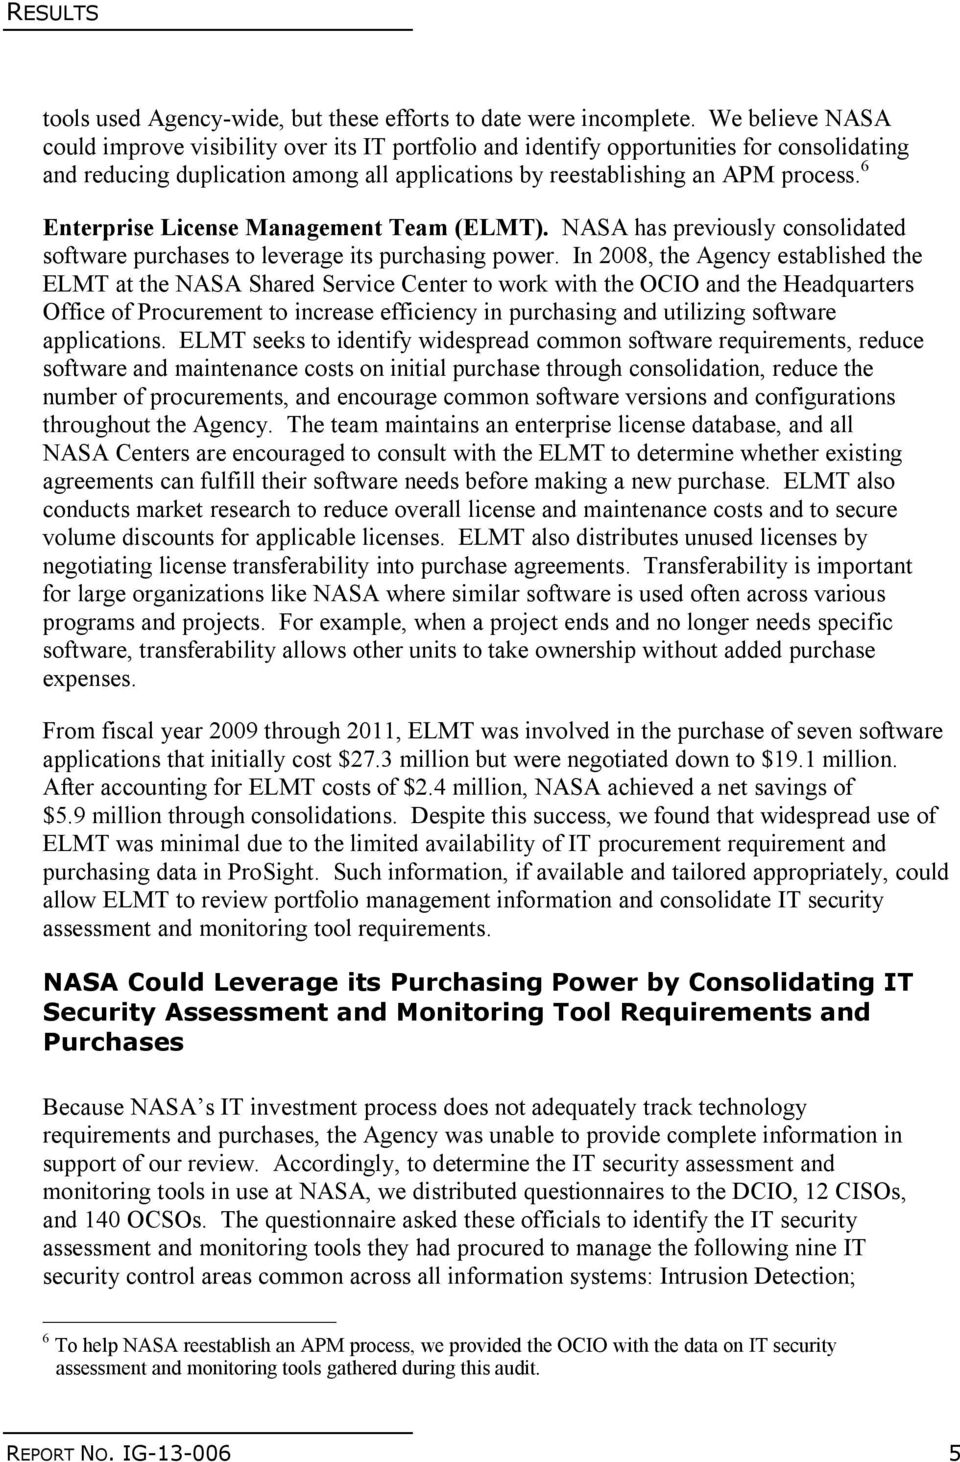 6 Enterprise License Management Team (ELMT). NASA has previously consolidated software purchases to leverage its purchasing power.